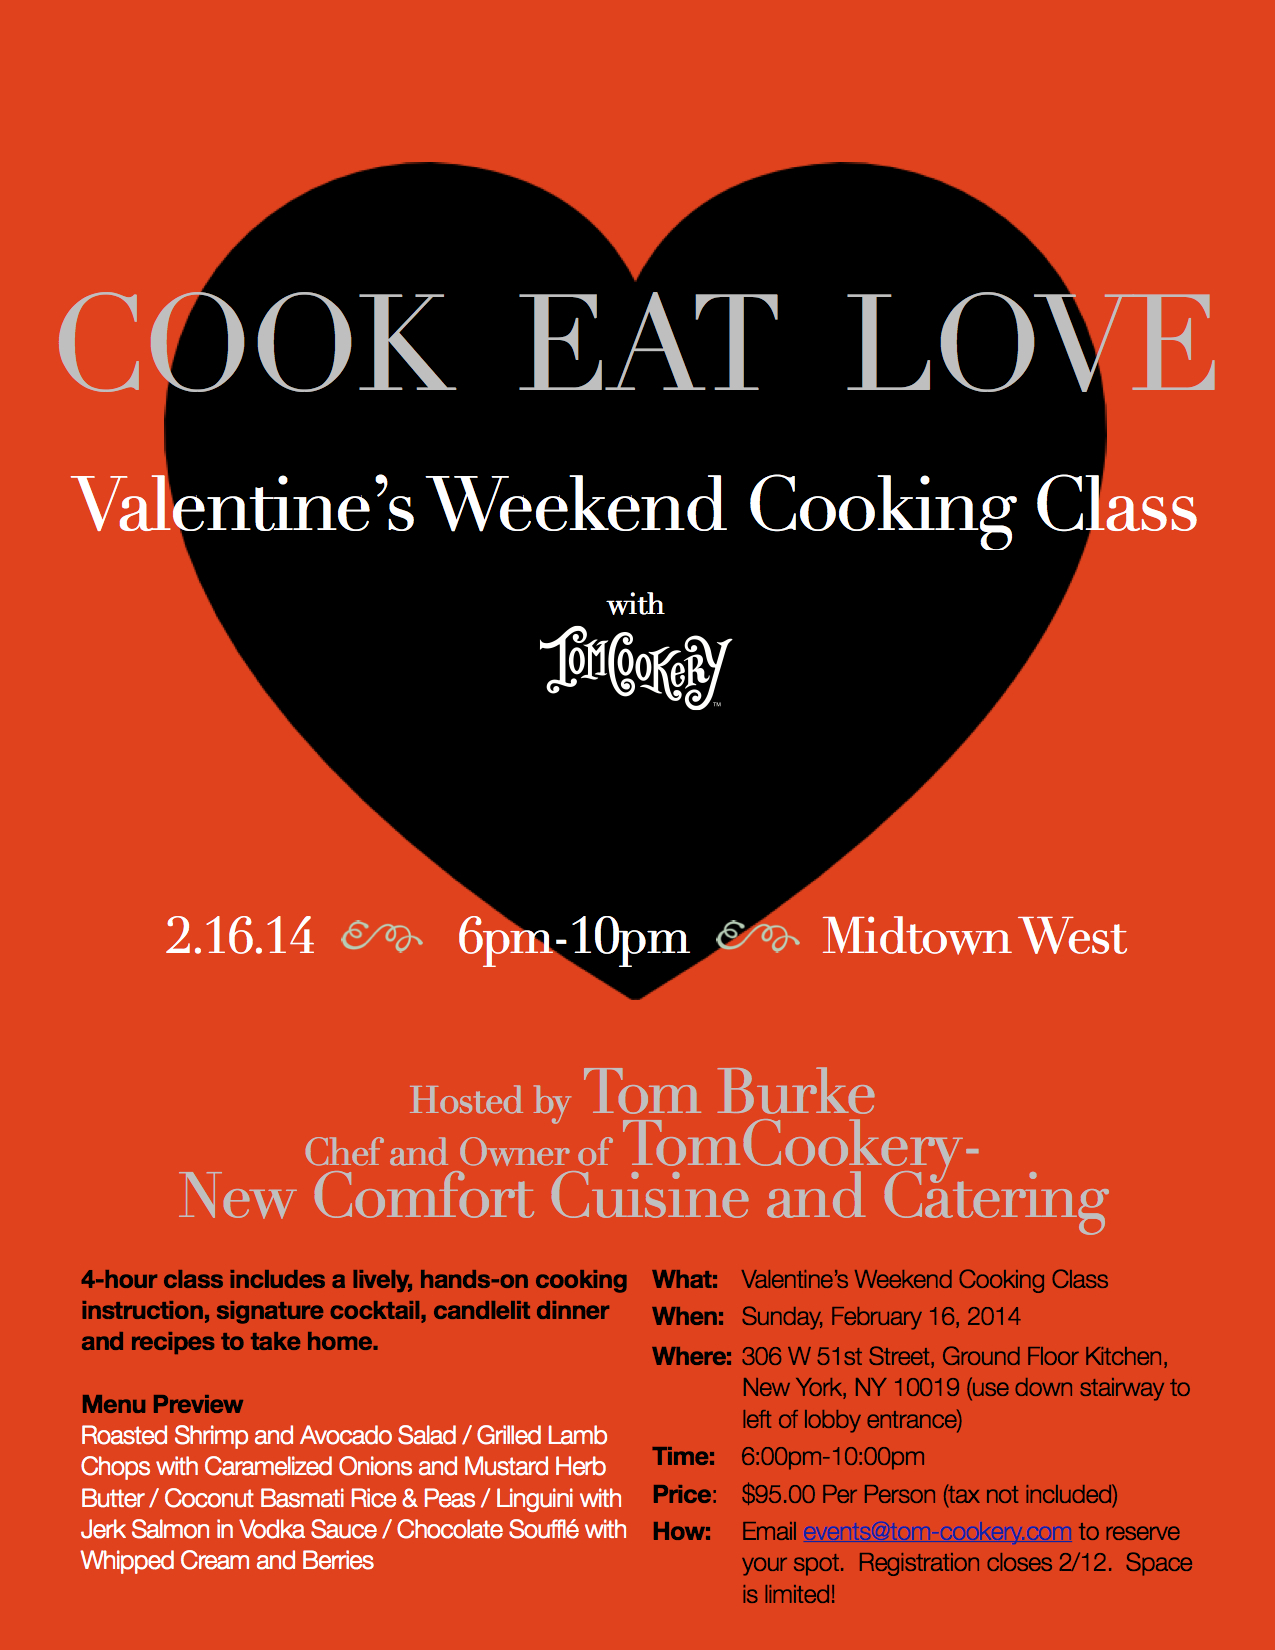 TomCookery Cooking Class Flyer V 3